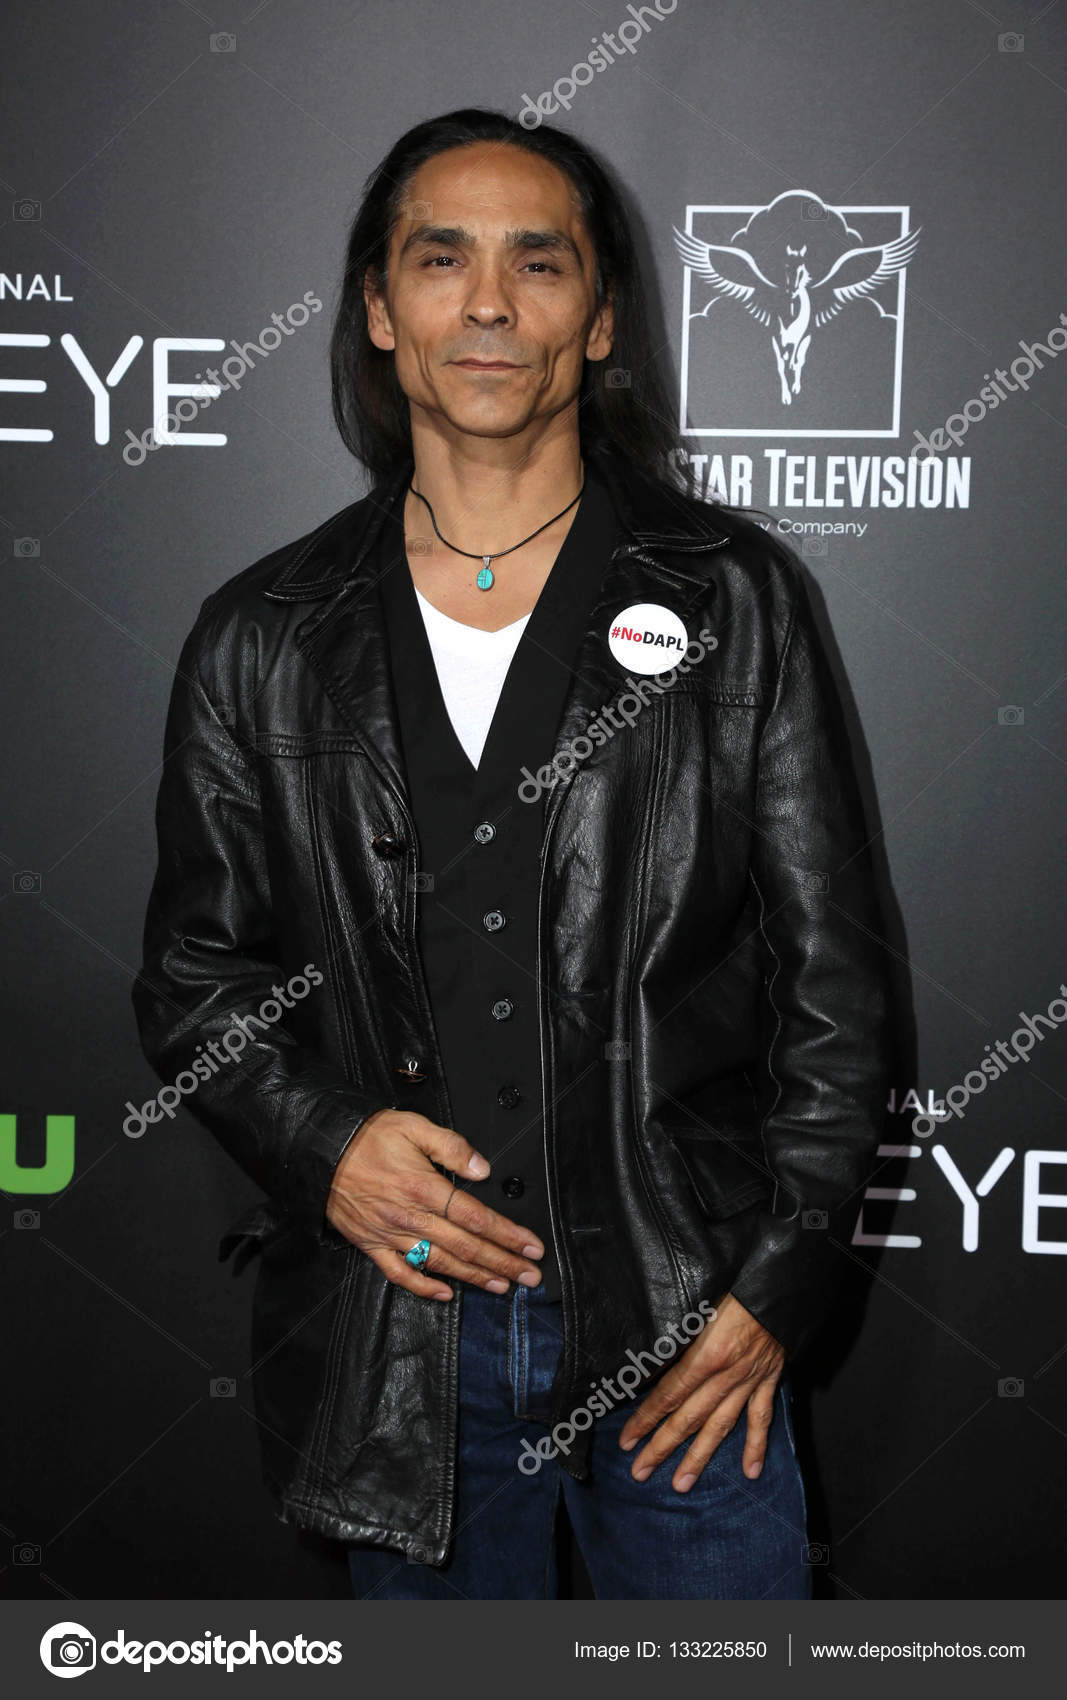 zahn mcclarnon official website